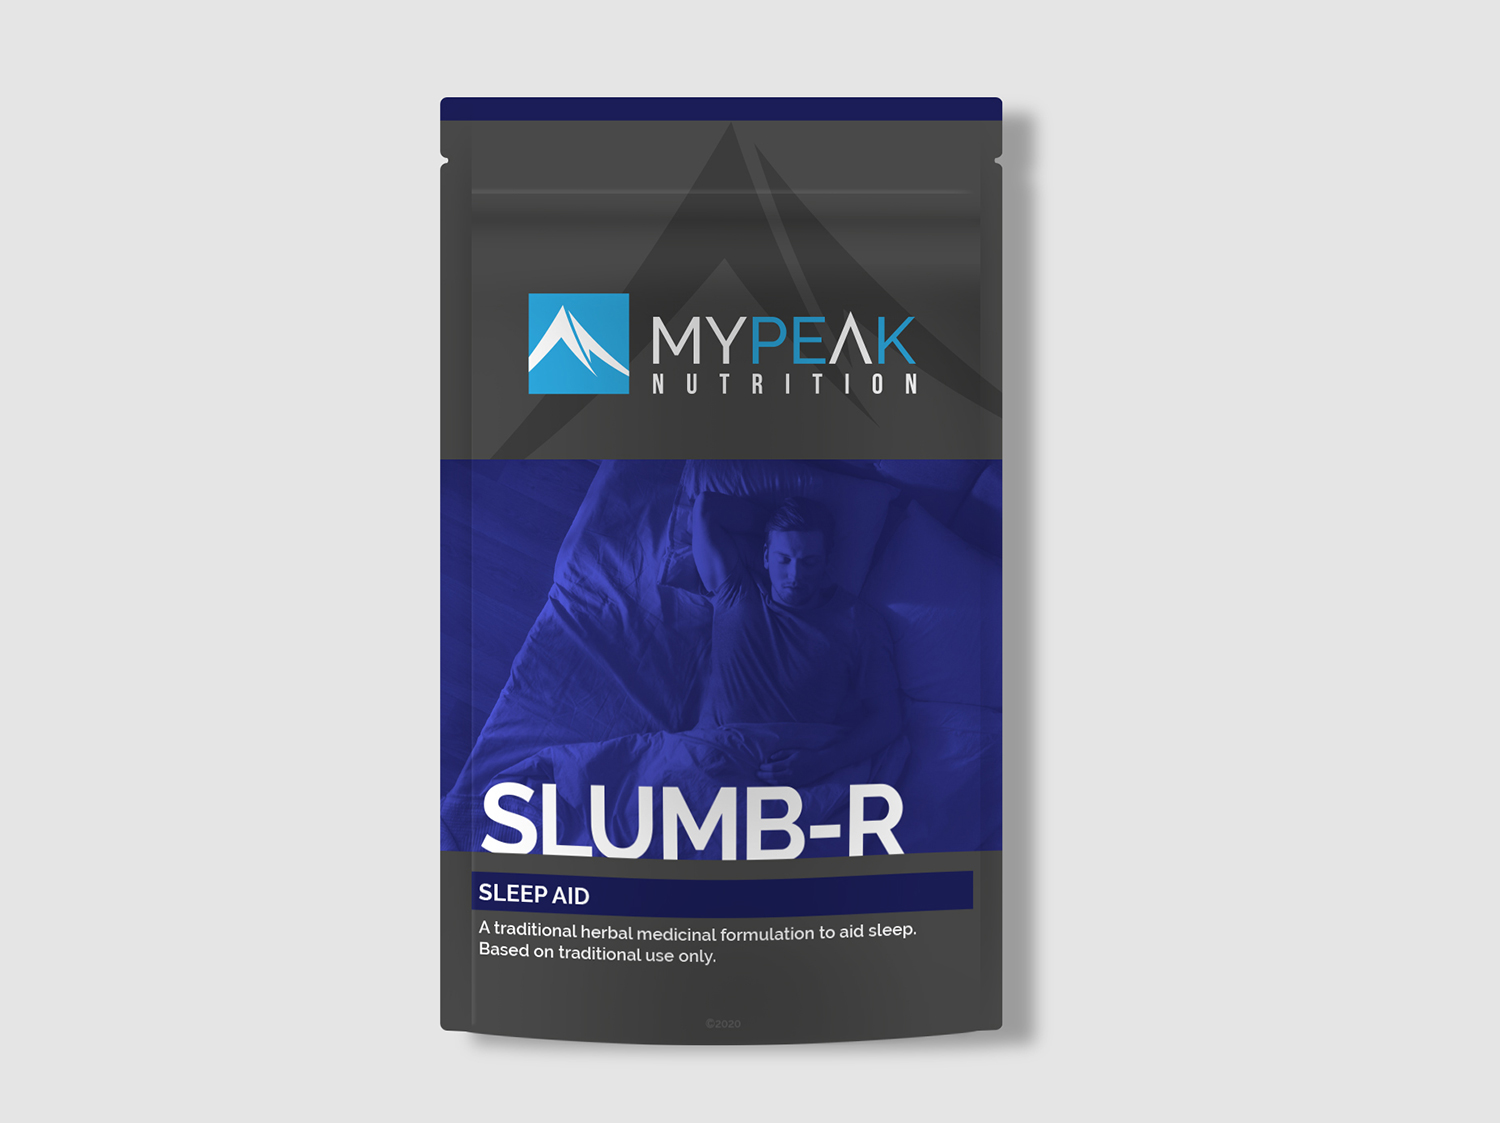 MyPeak Packaging Design Slumb-R - My Name is Dan